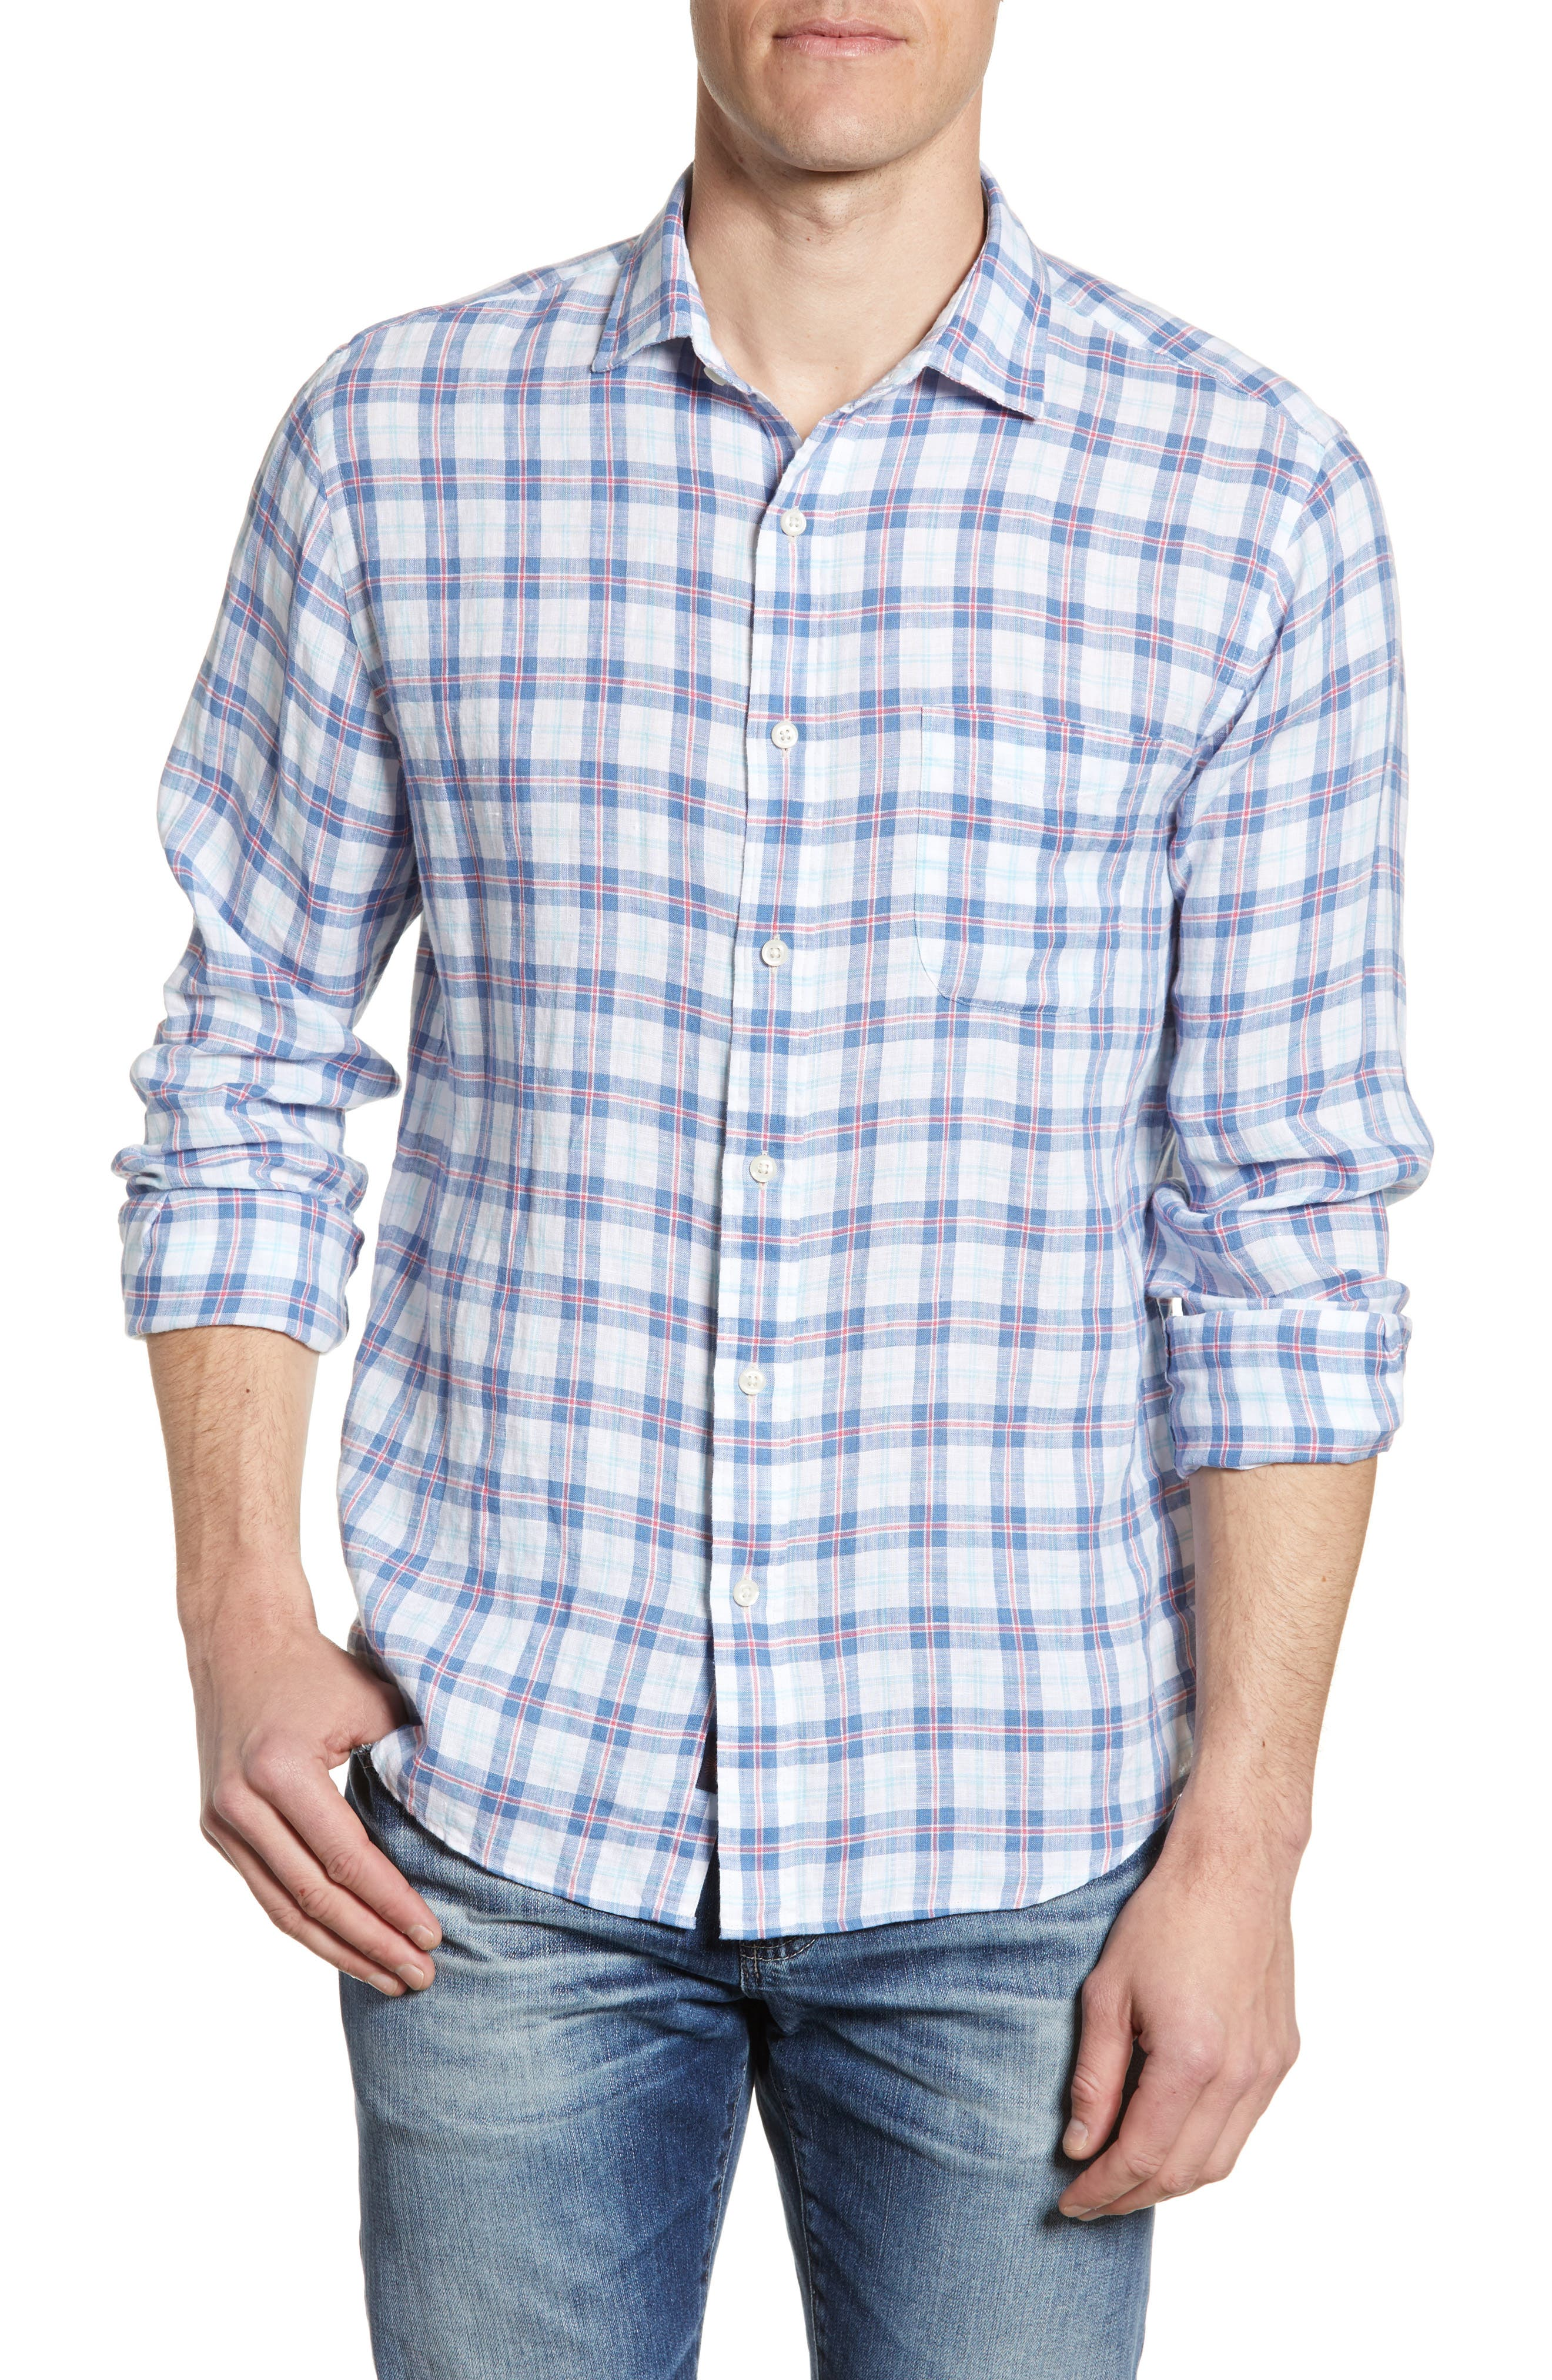 Faherty T-shirts Plaid Linen Button-Up Shirt